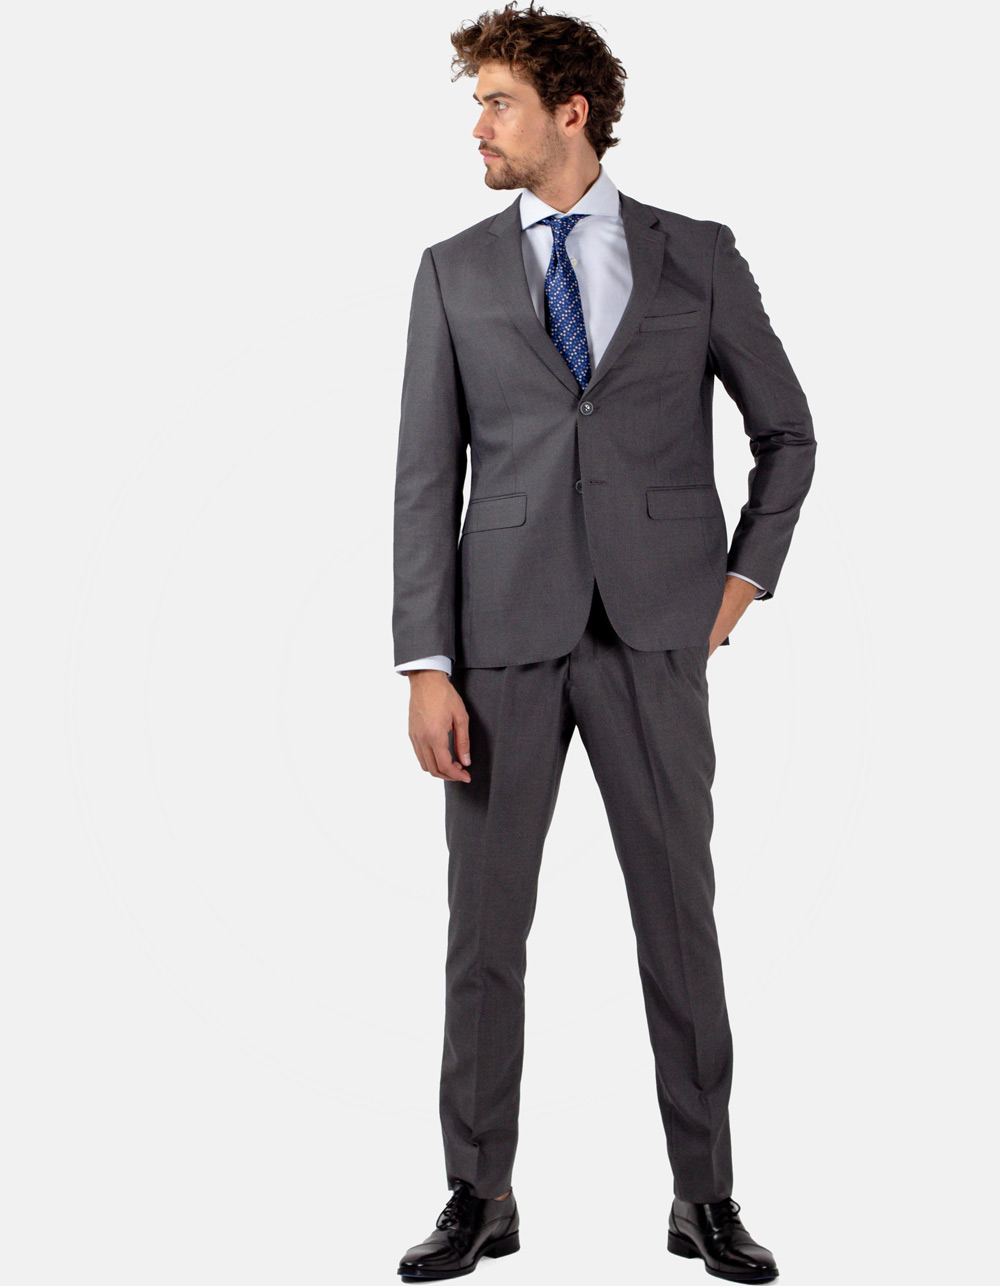 Grey plain suit